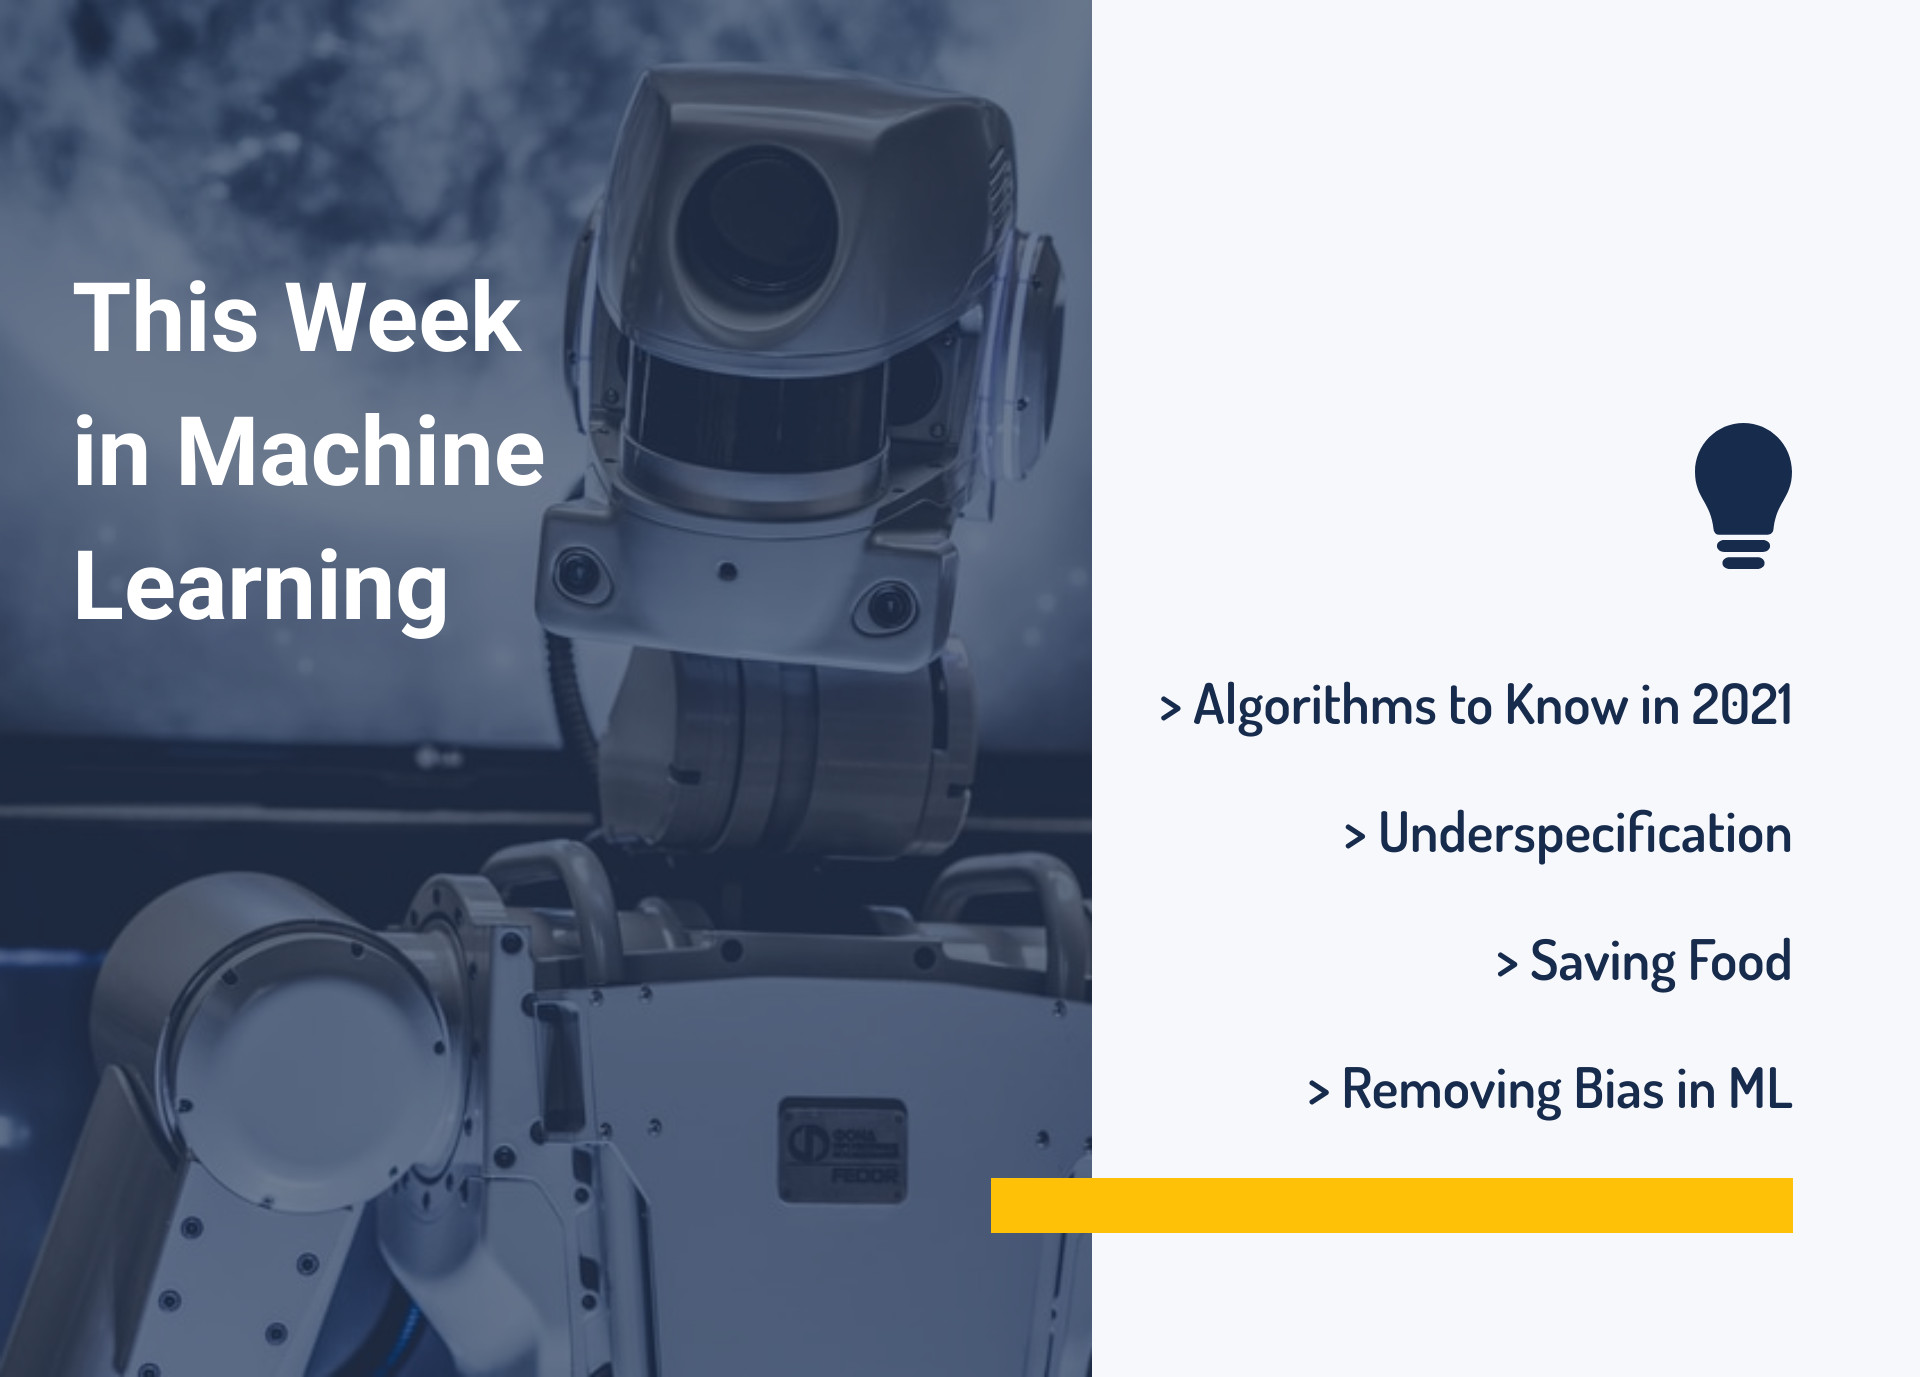 This Week in Machine Learning: Algorithms to Know in 2021, Underspecification, Saving Food, and Removing Bias in ML